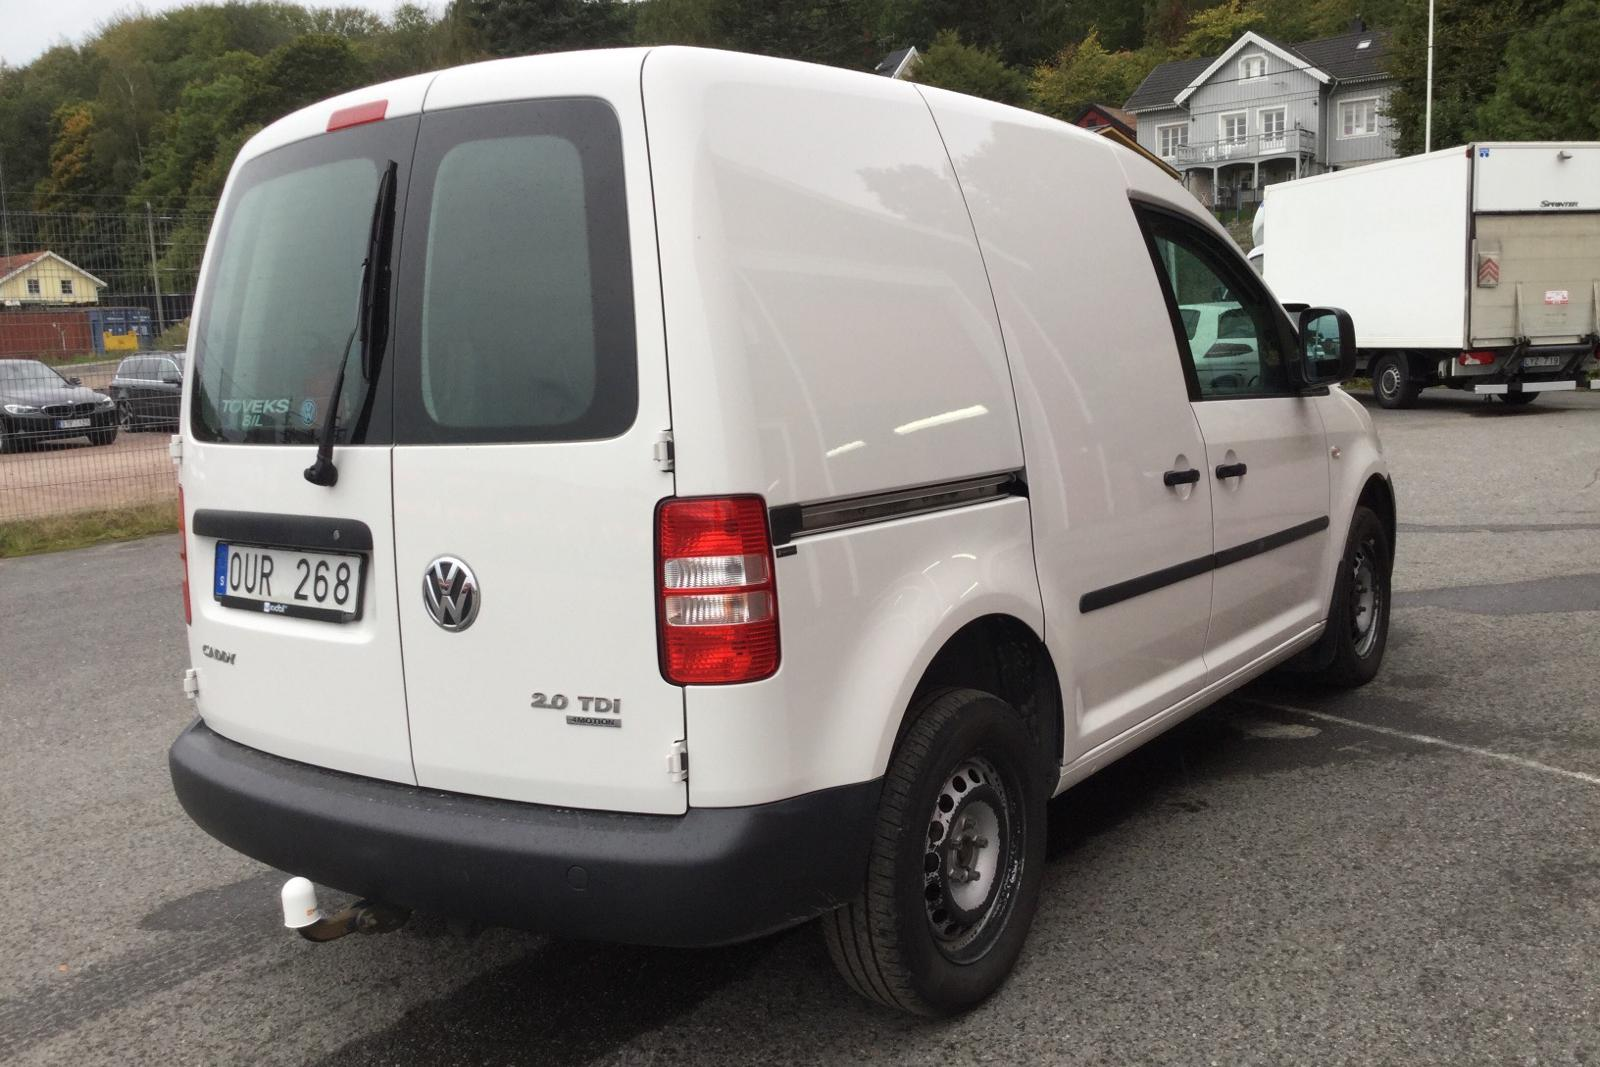 VW Caddy 2.0 TDI Skåp 4-motion (110hk) - 0 mil - Manuell - vit - 2012